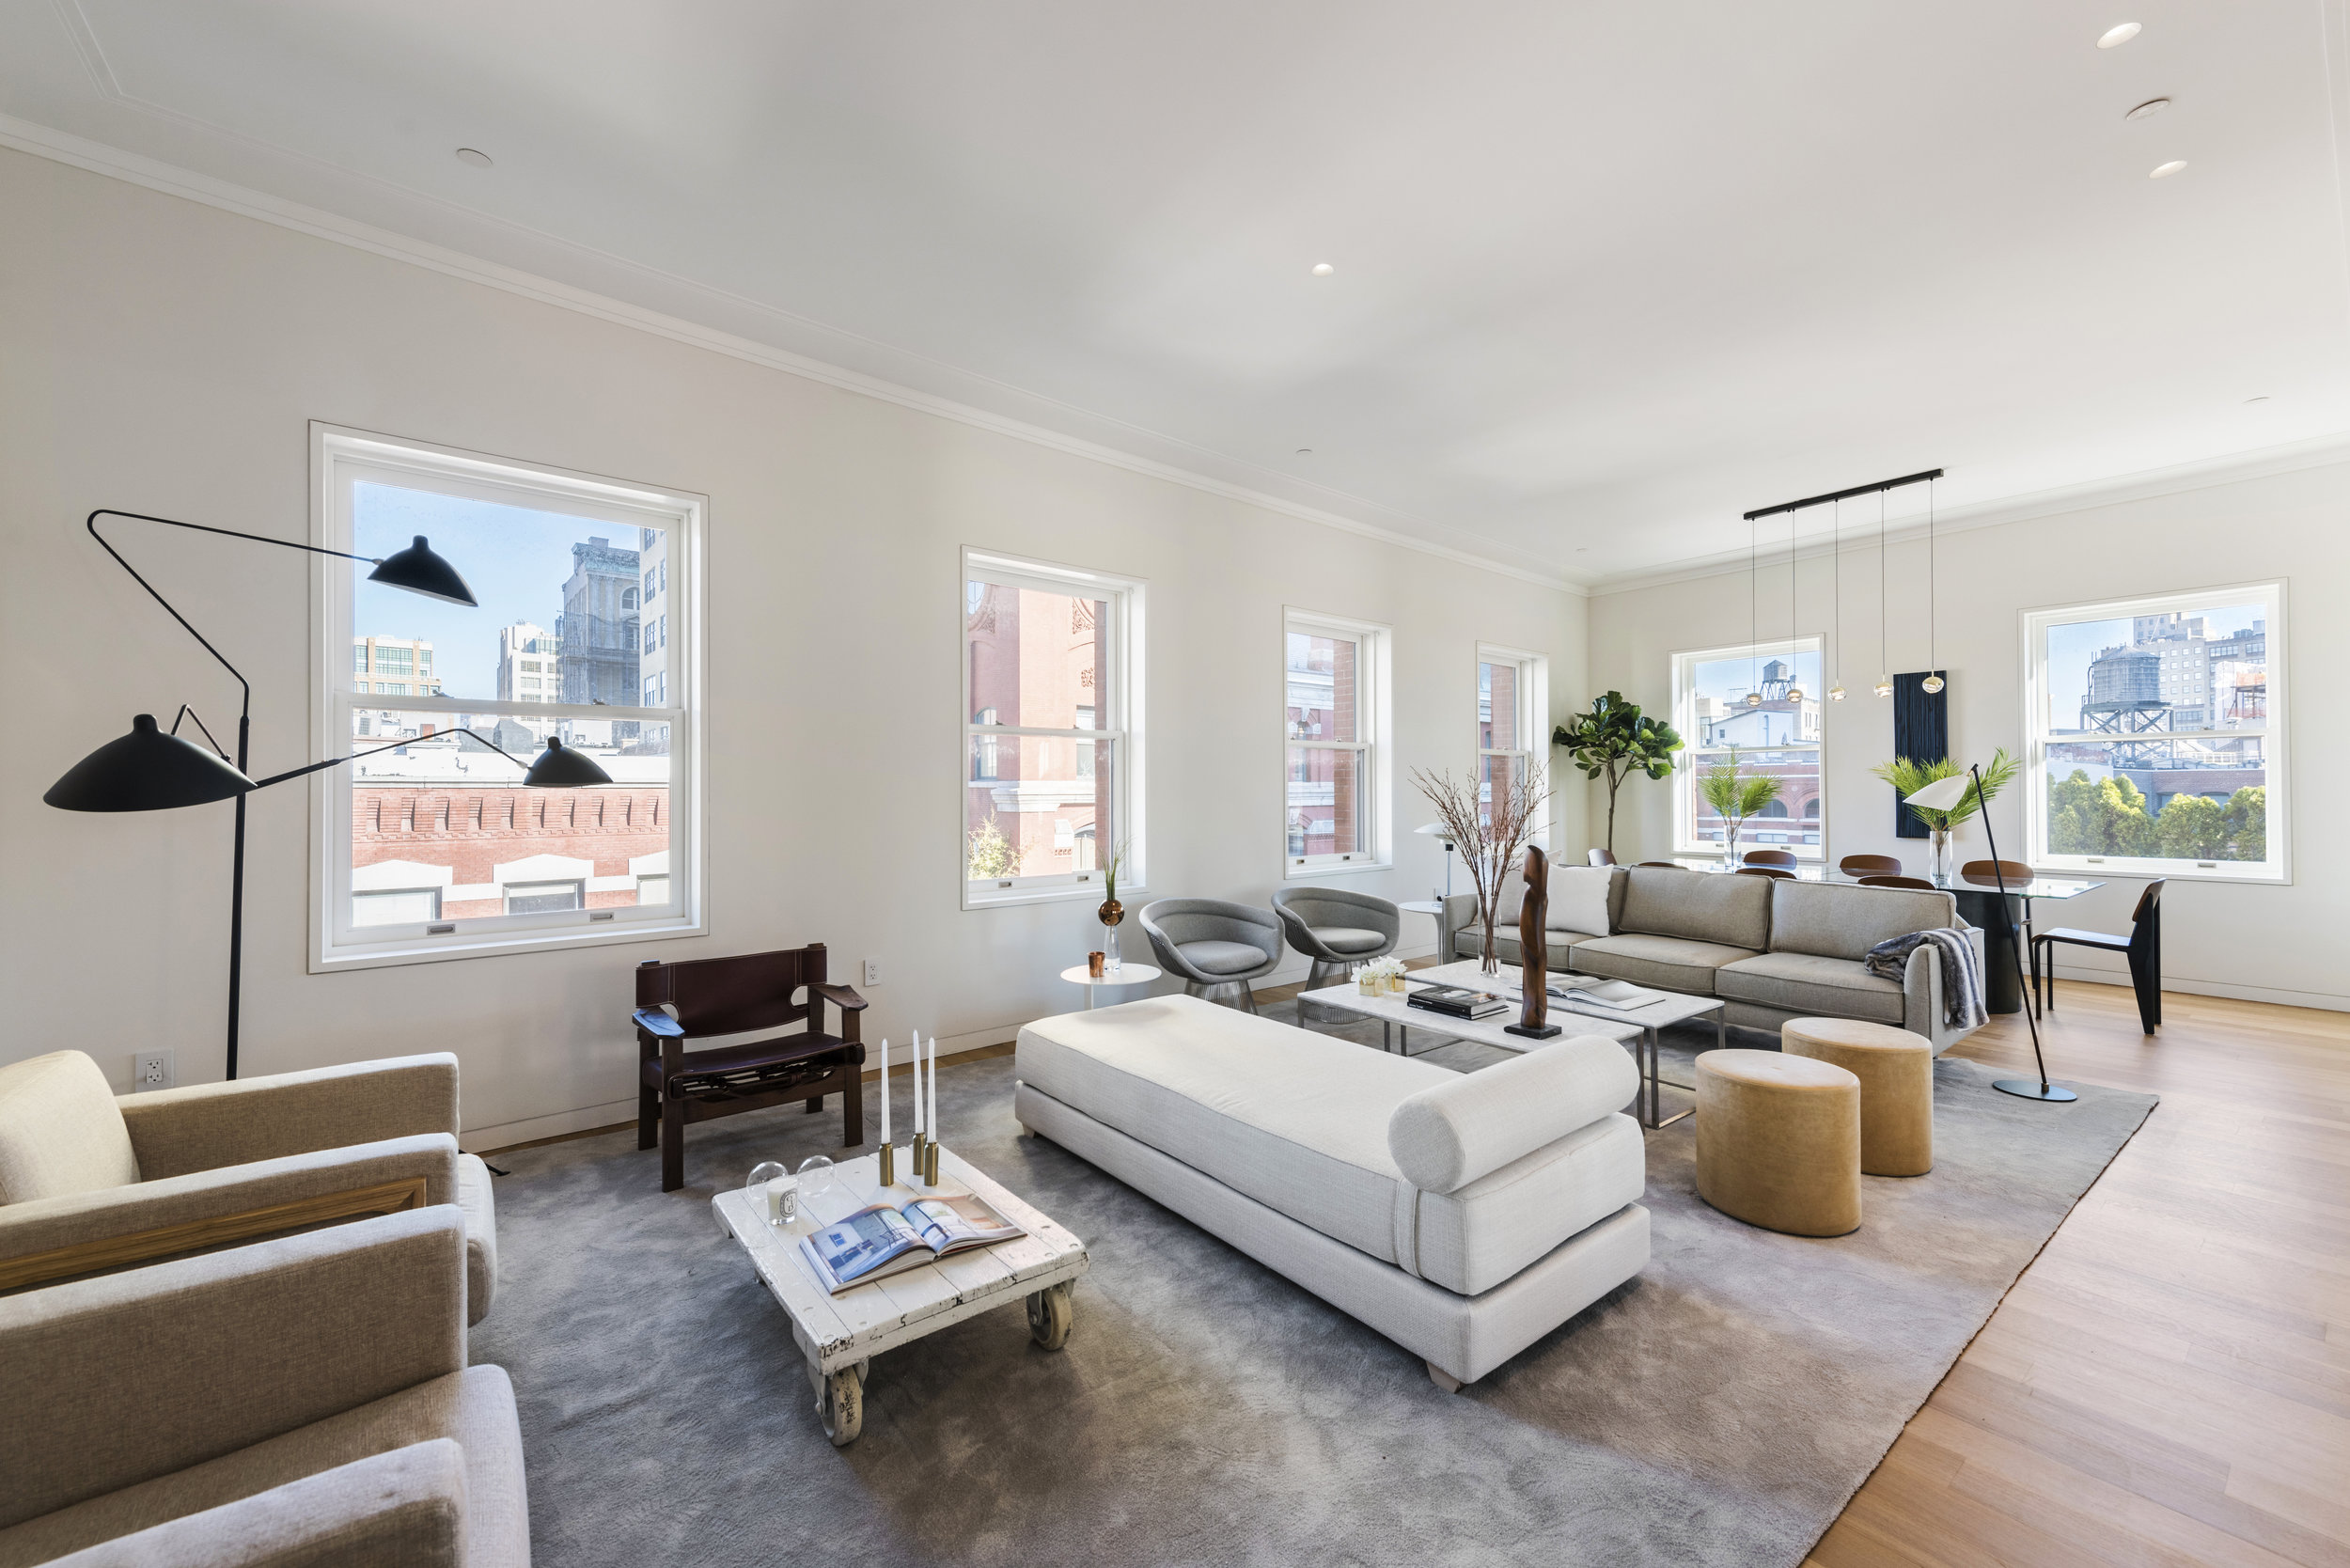 7 Harrison Street: 7N - $6,990,000 // 3 Beds // 3 Baths // 2,205 SQFT A flawless corner condo with open views in Tribecas's most exclusive condominium building, this amazing 3-bedroom, 3-bathroom is a blend of pre-war charm and modern luxury.